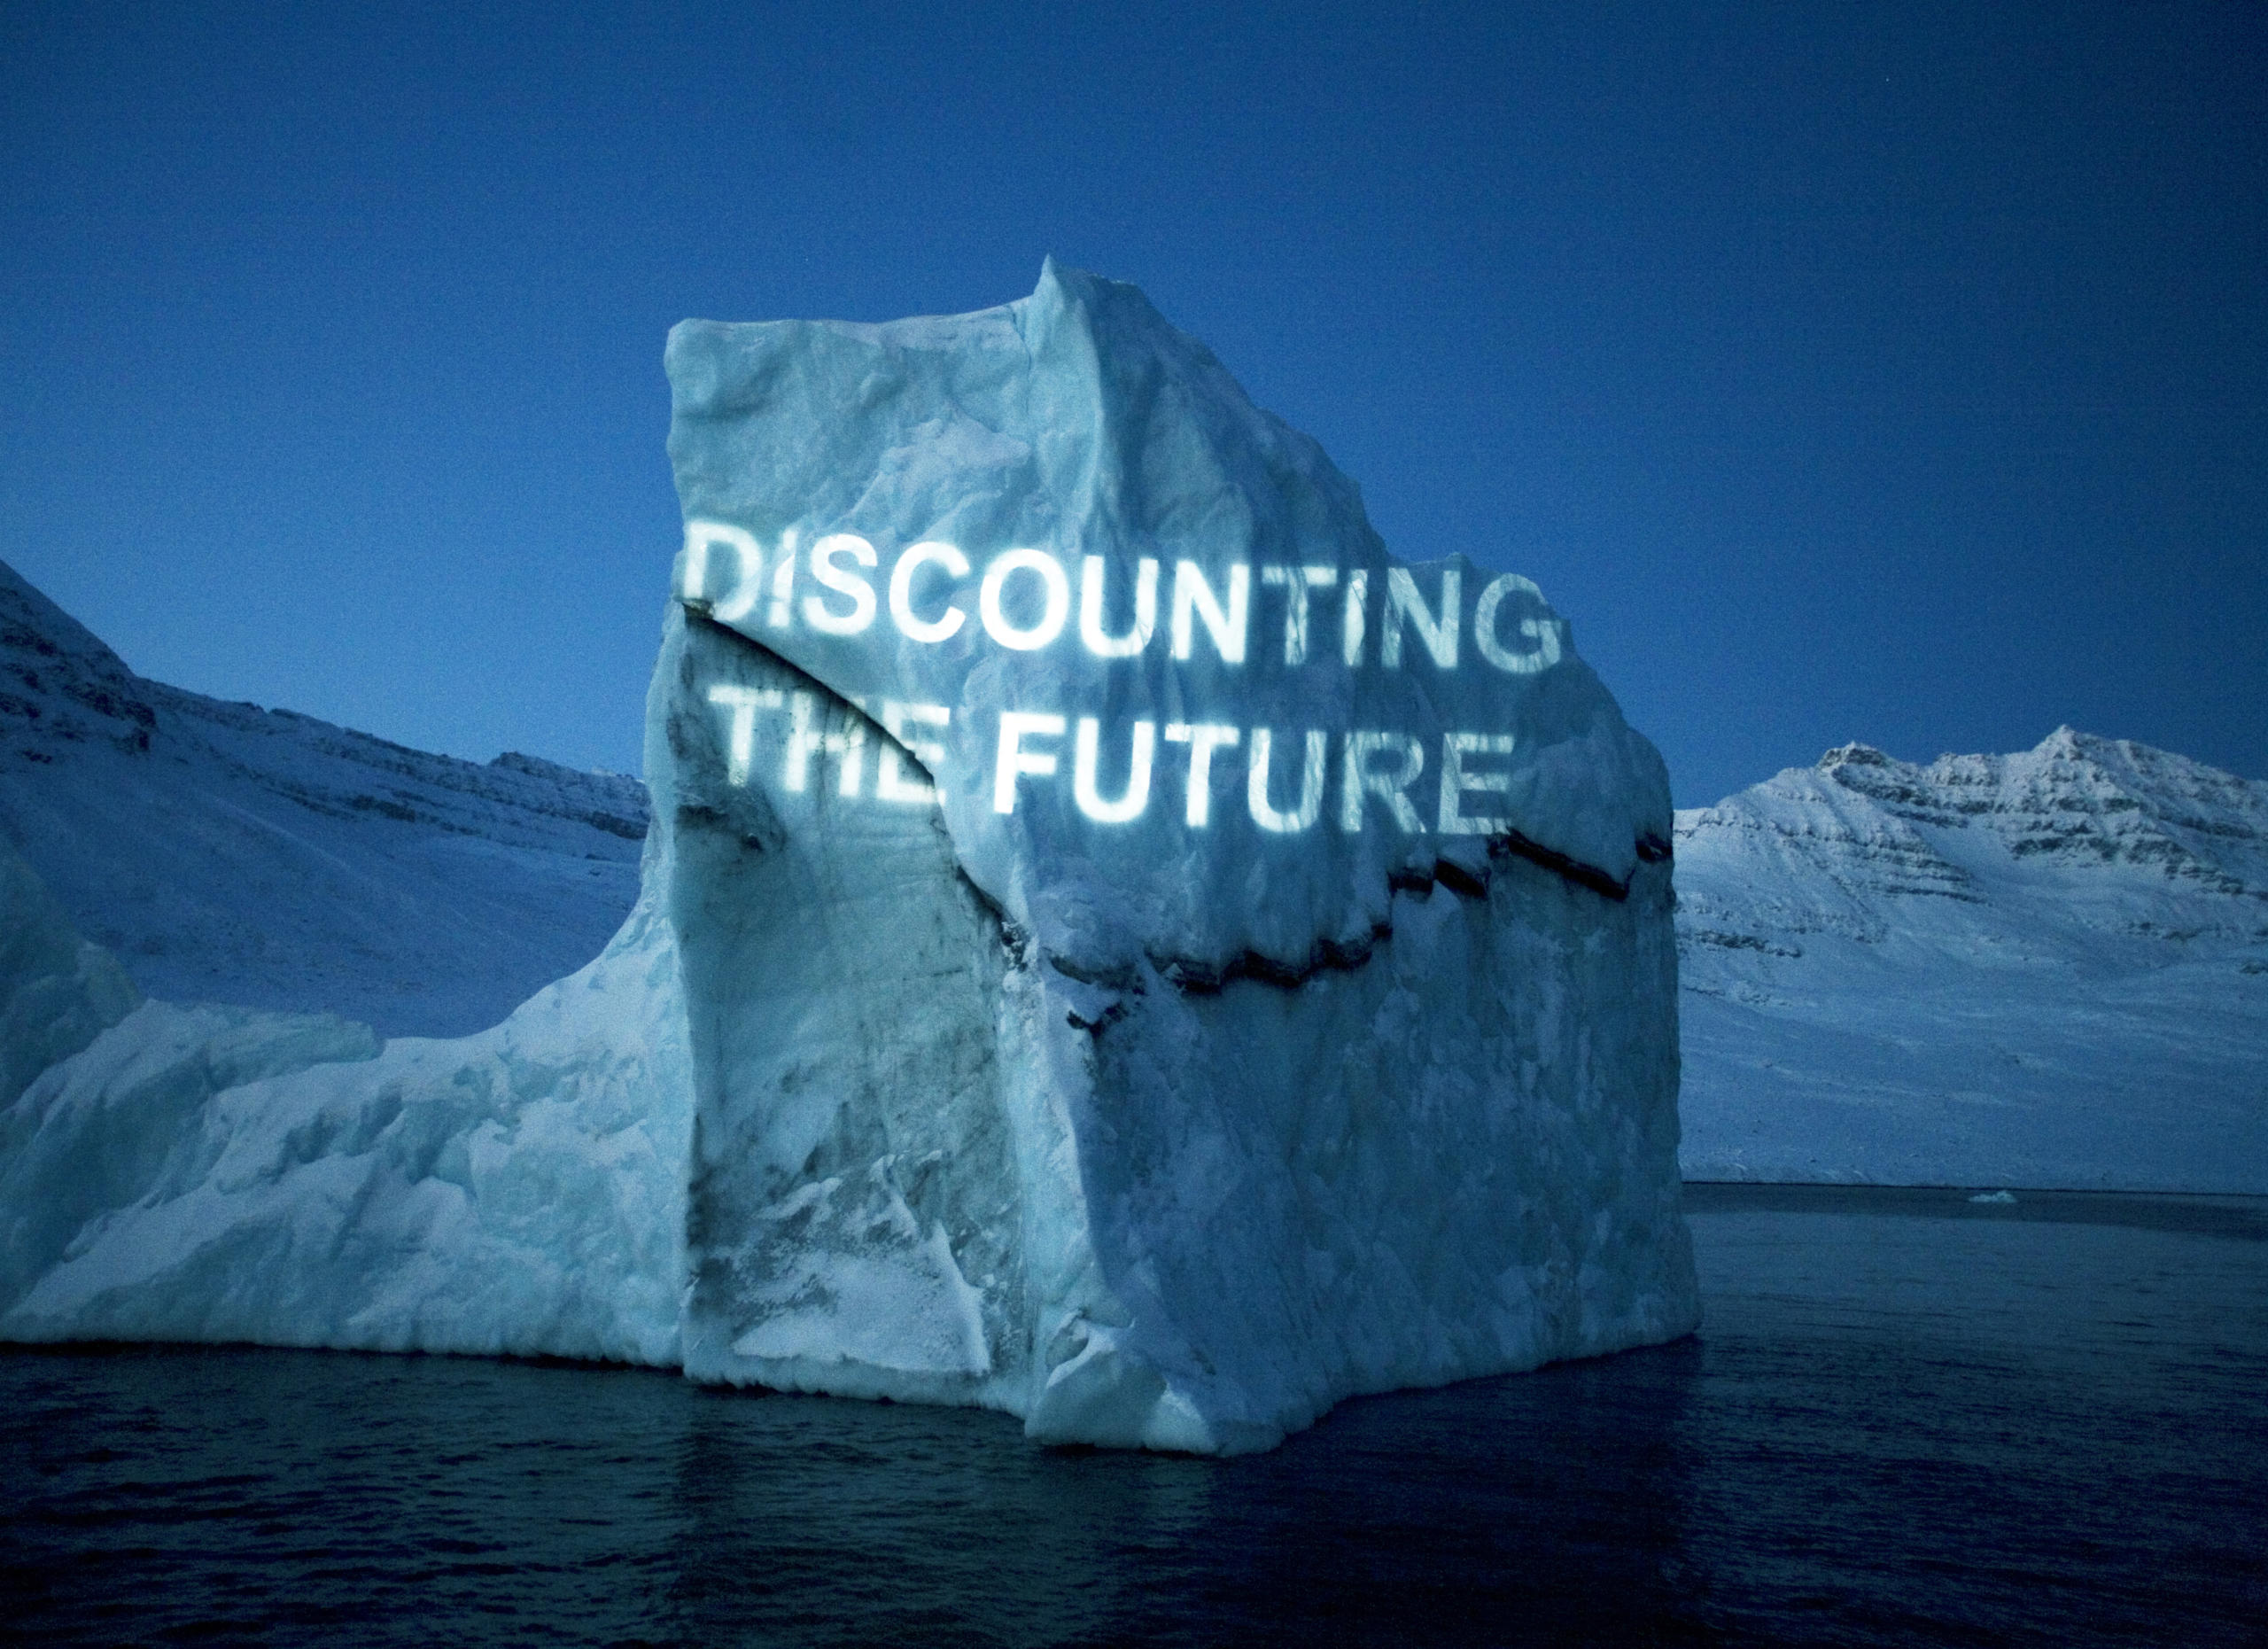 Discounting the Future projected onto an iceberg